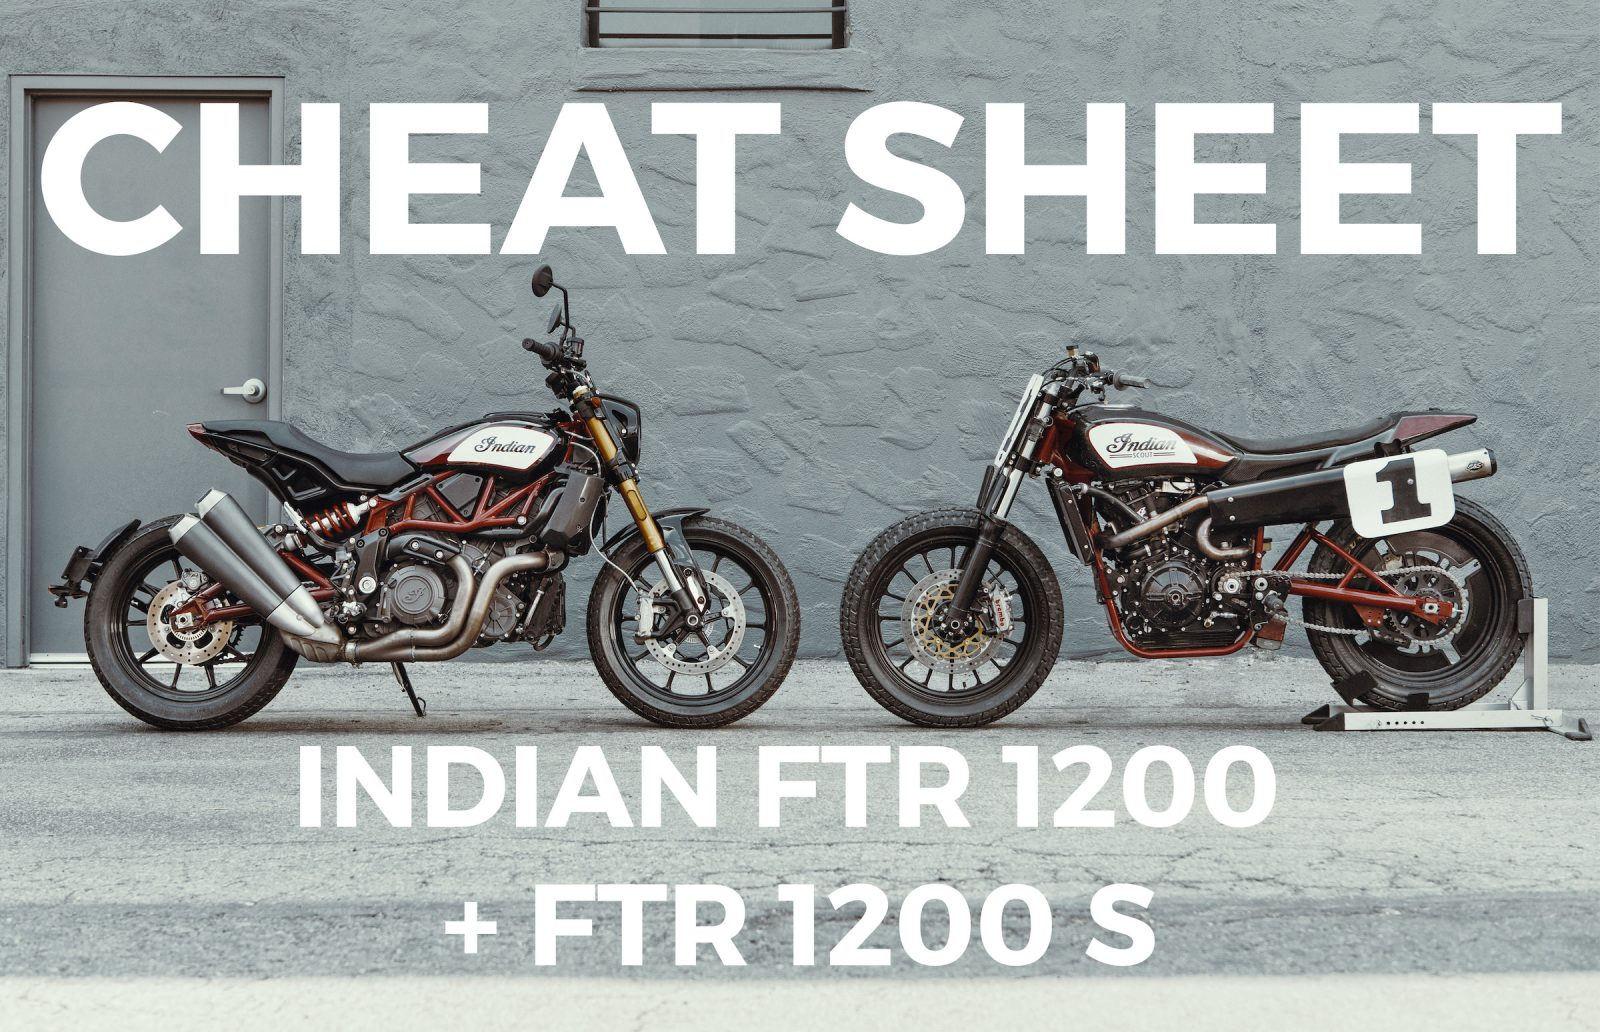 A Cheat Sheet For The New Indian FTR 1200 + FTR 1200 S